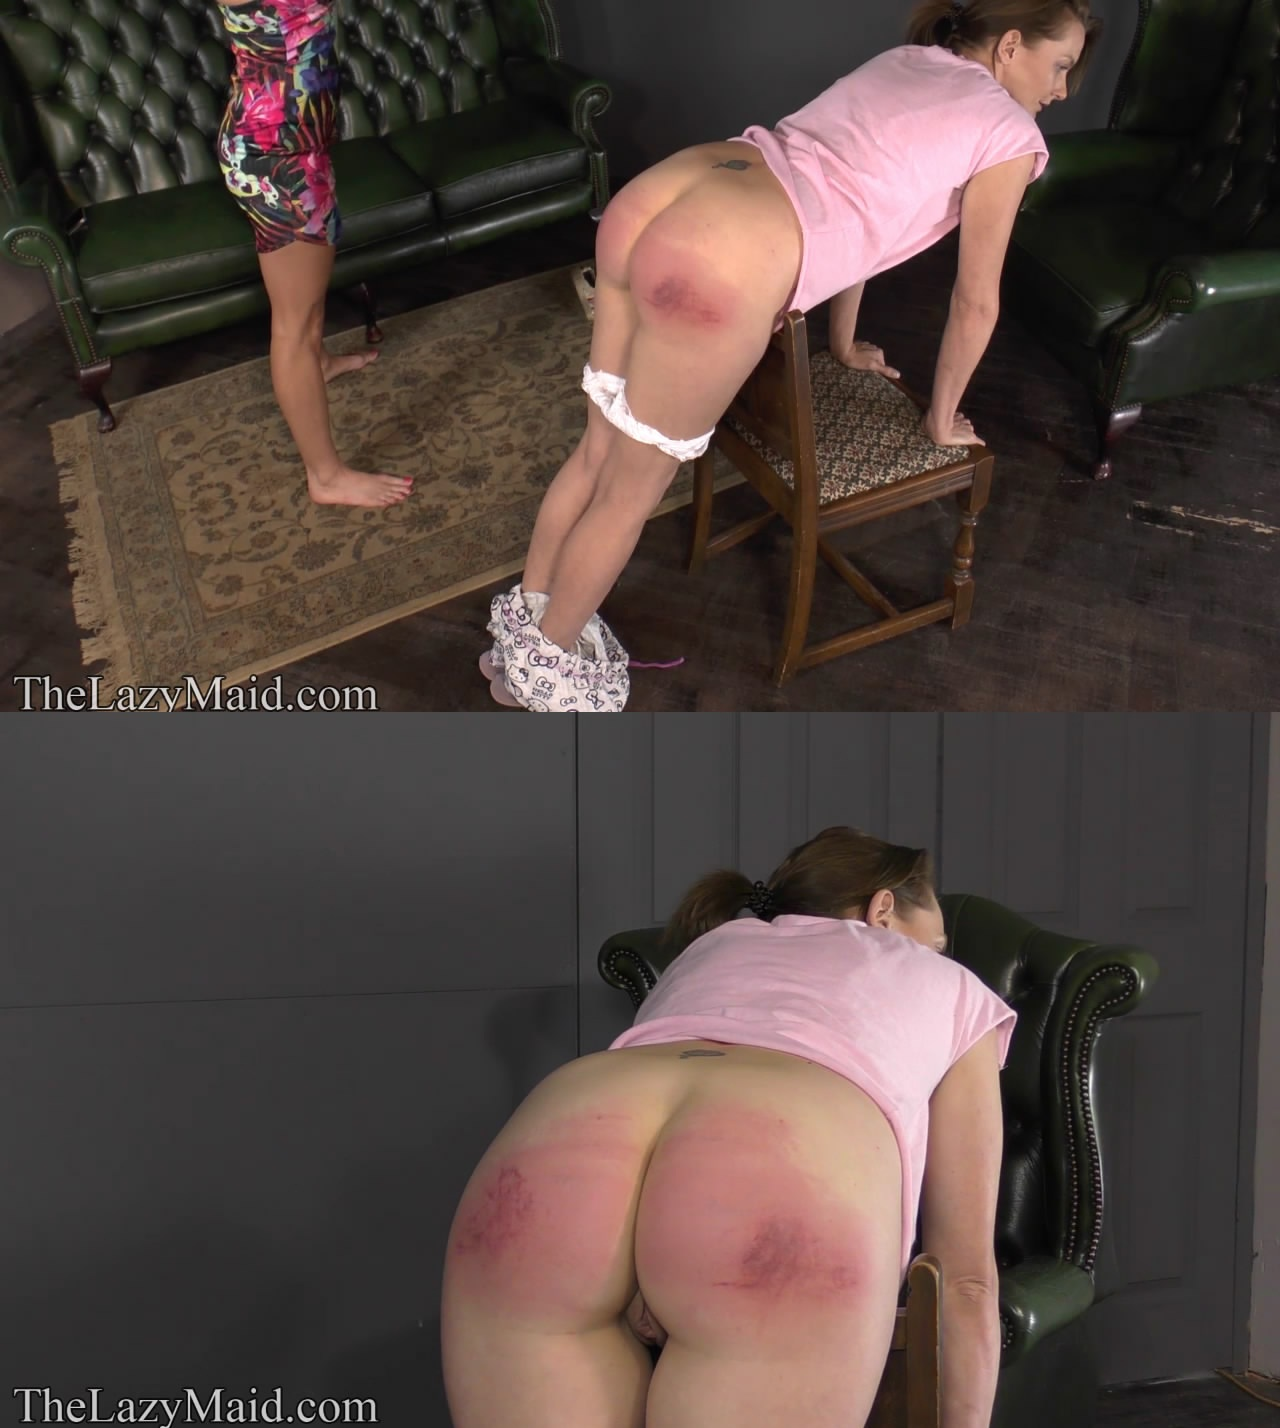 The Lazy Maid – MP4/HD – Lisa Suzi